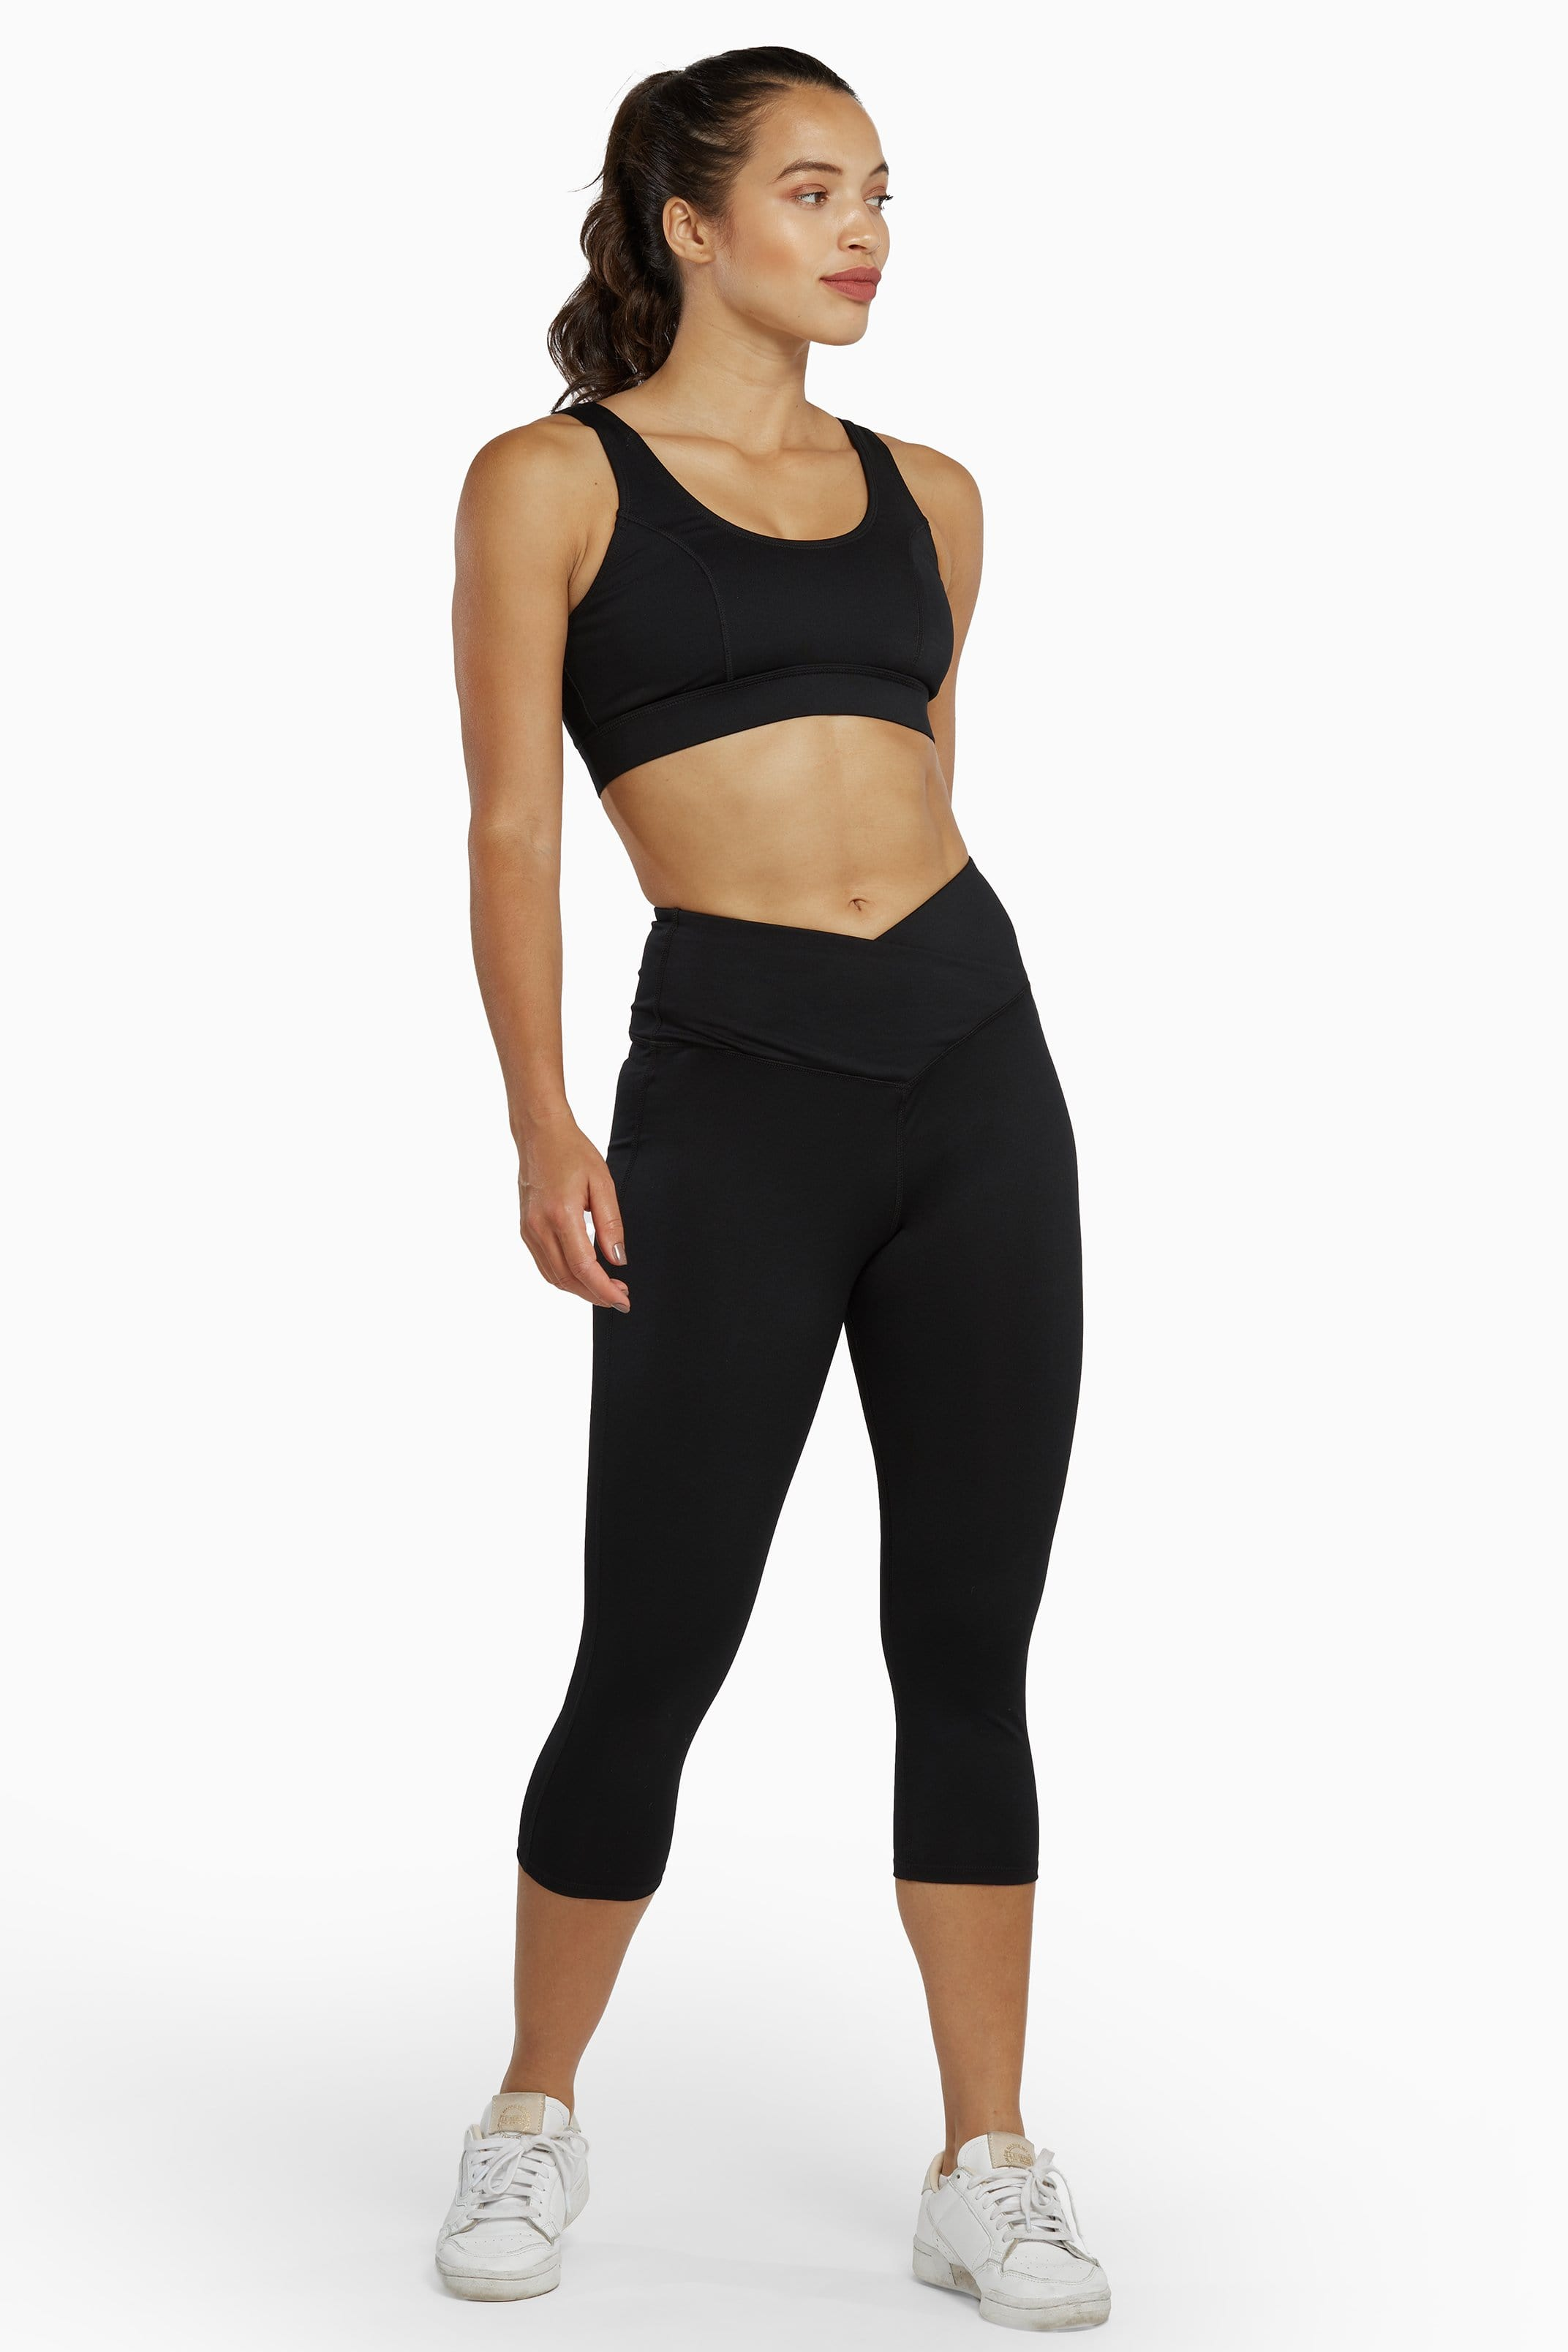 Wolf & Whistle Black Cropped Leggings with Crossover Waistband UK 10 / US 6